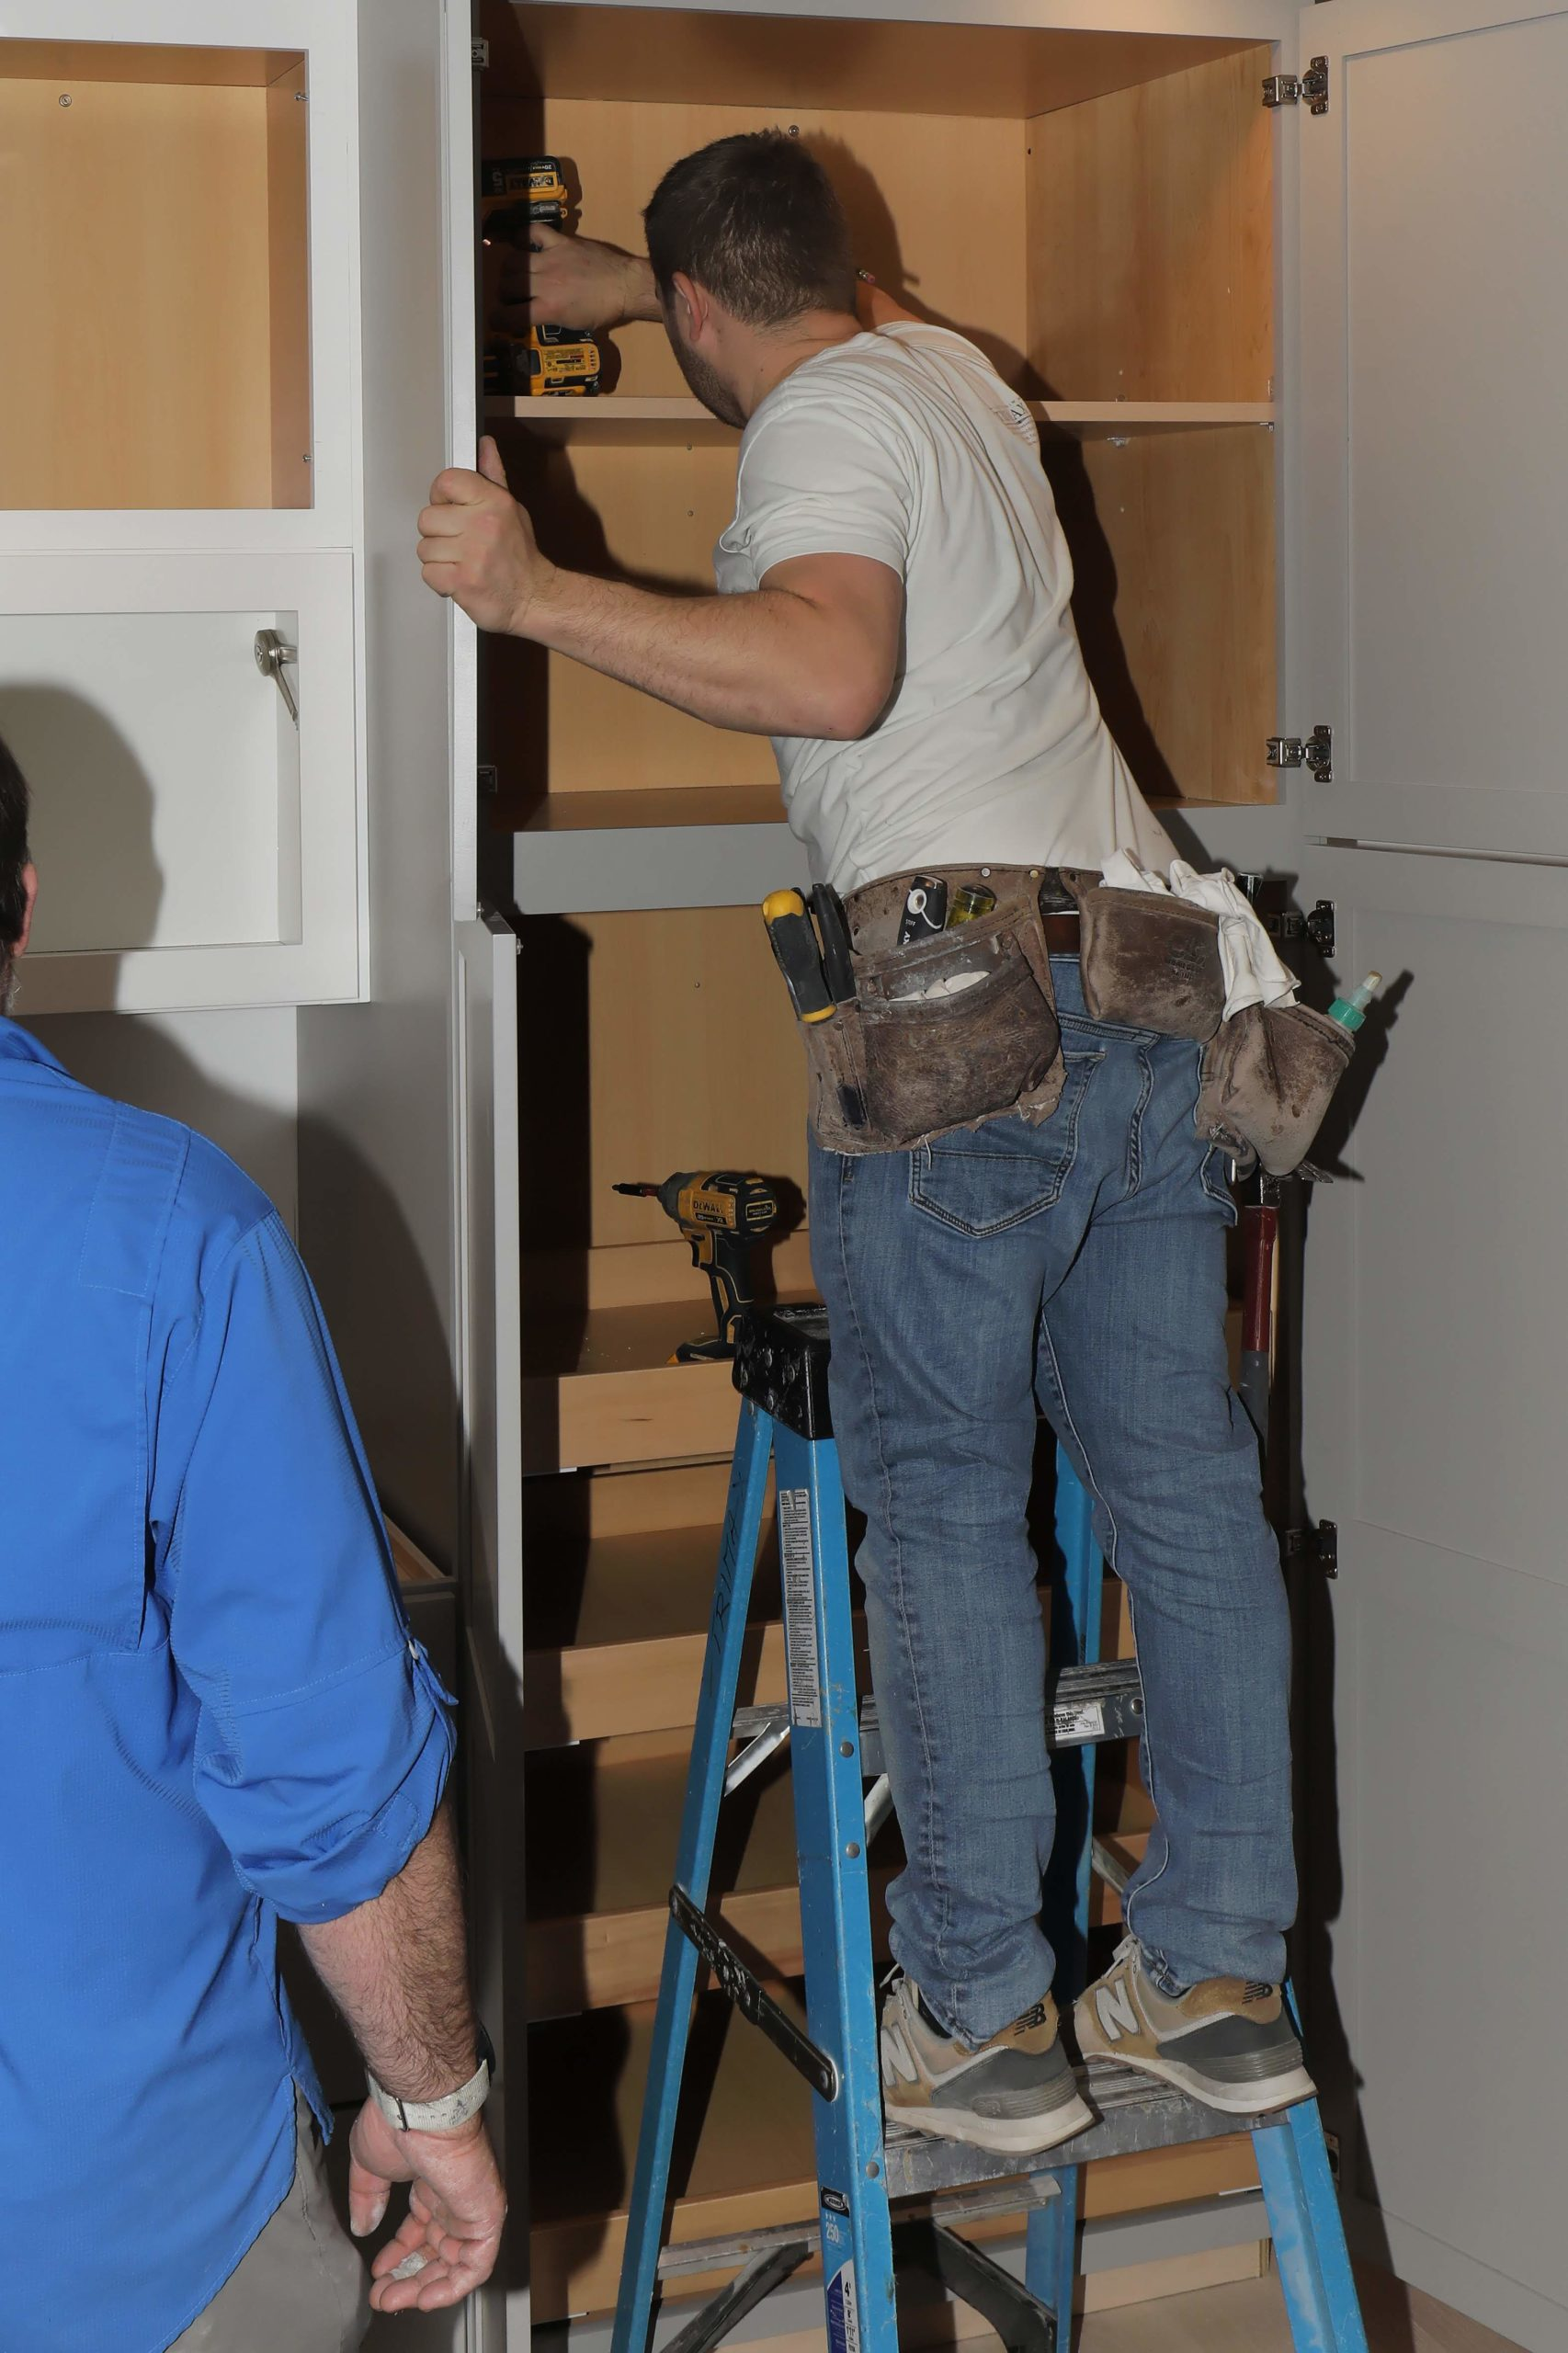 Using The 3rd Hand Cabinet Support System.